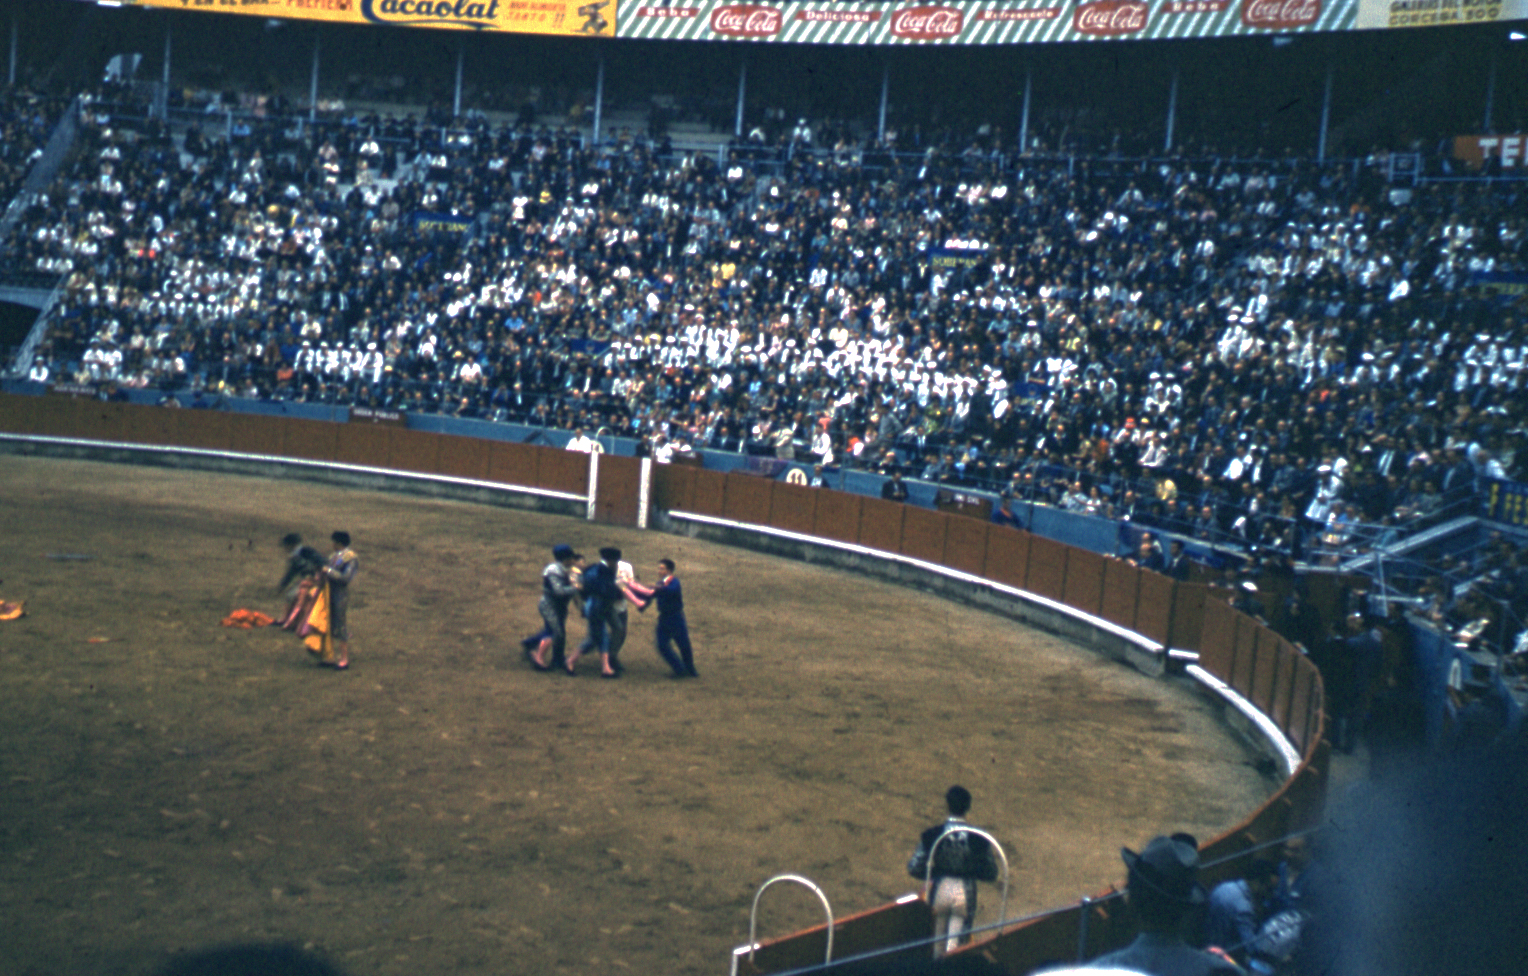 35-jun60-barcelona-bullfights